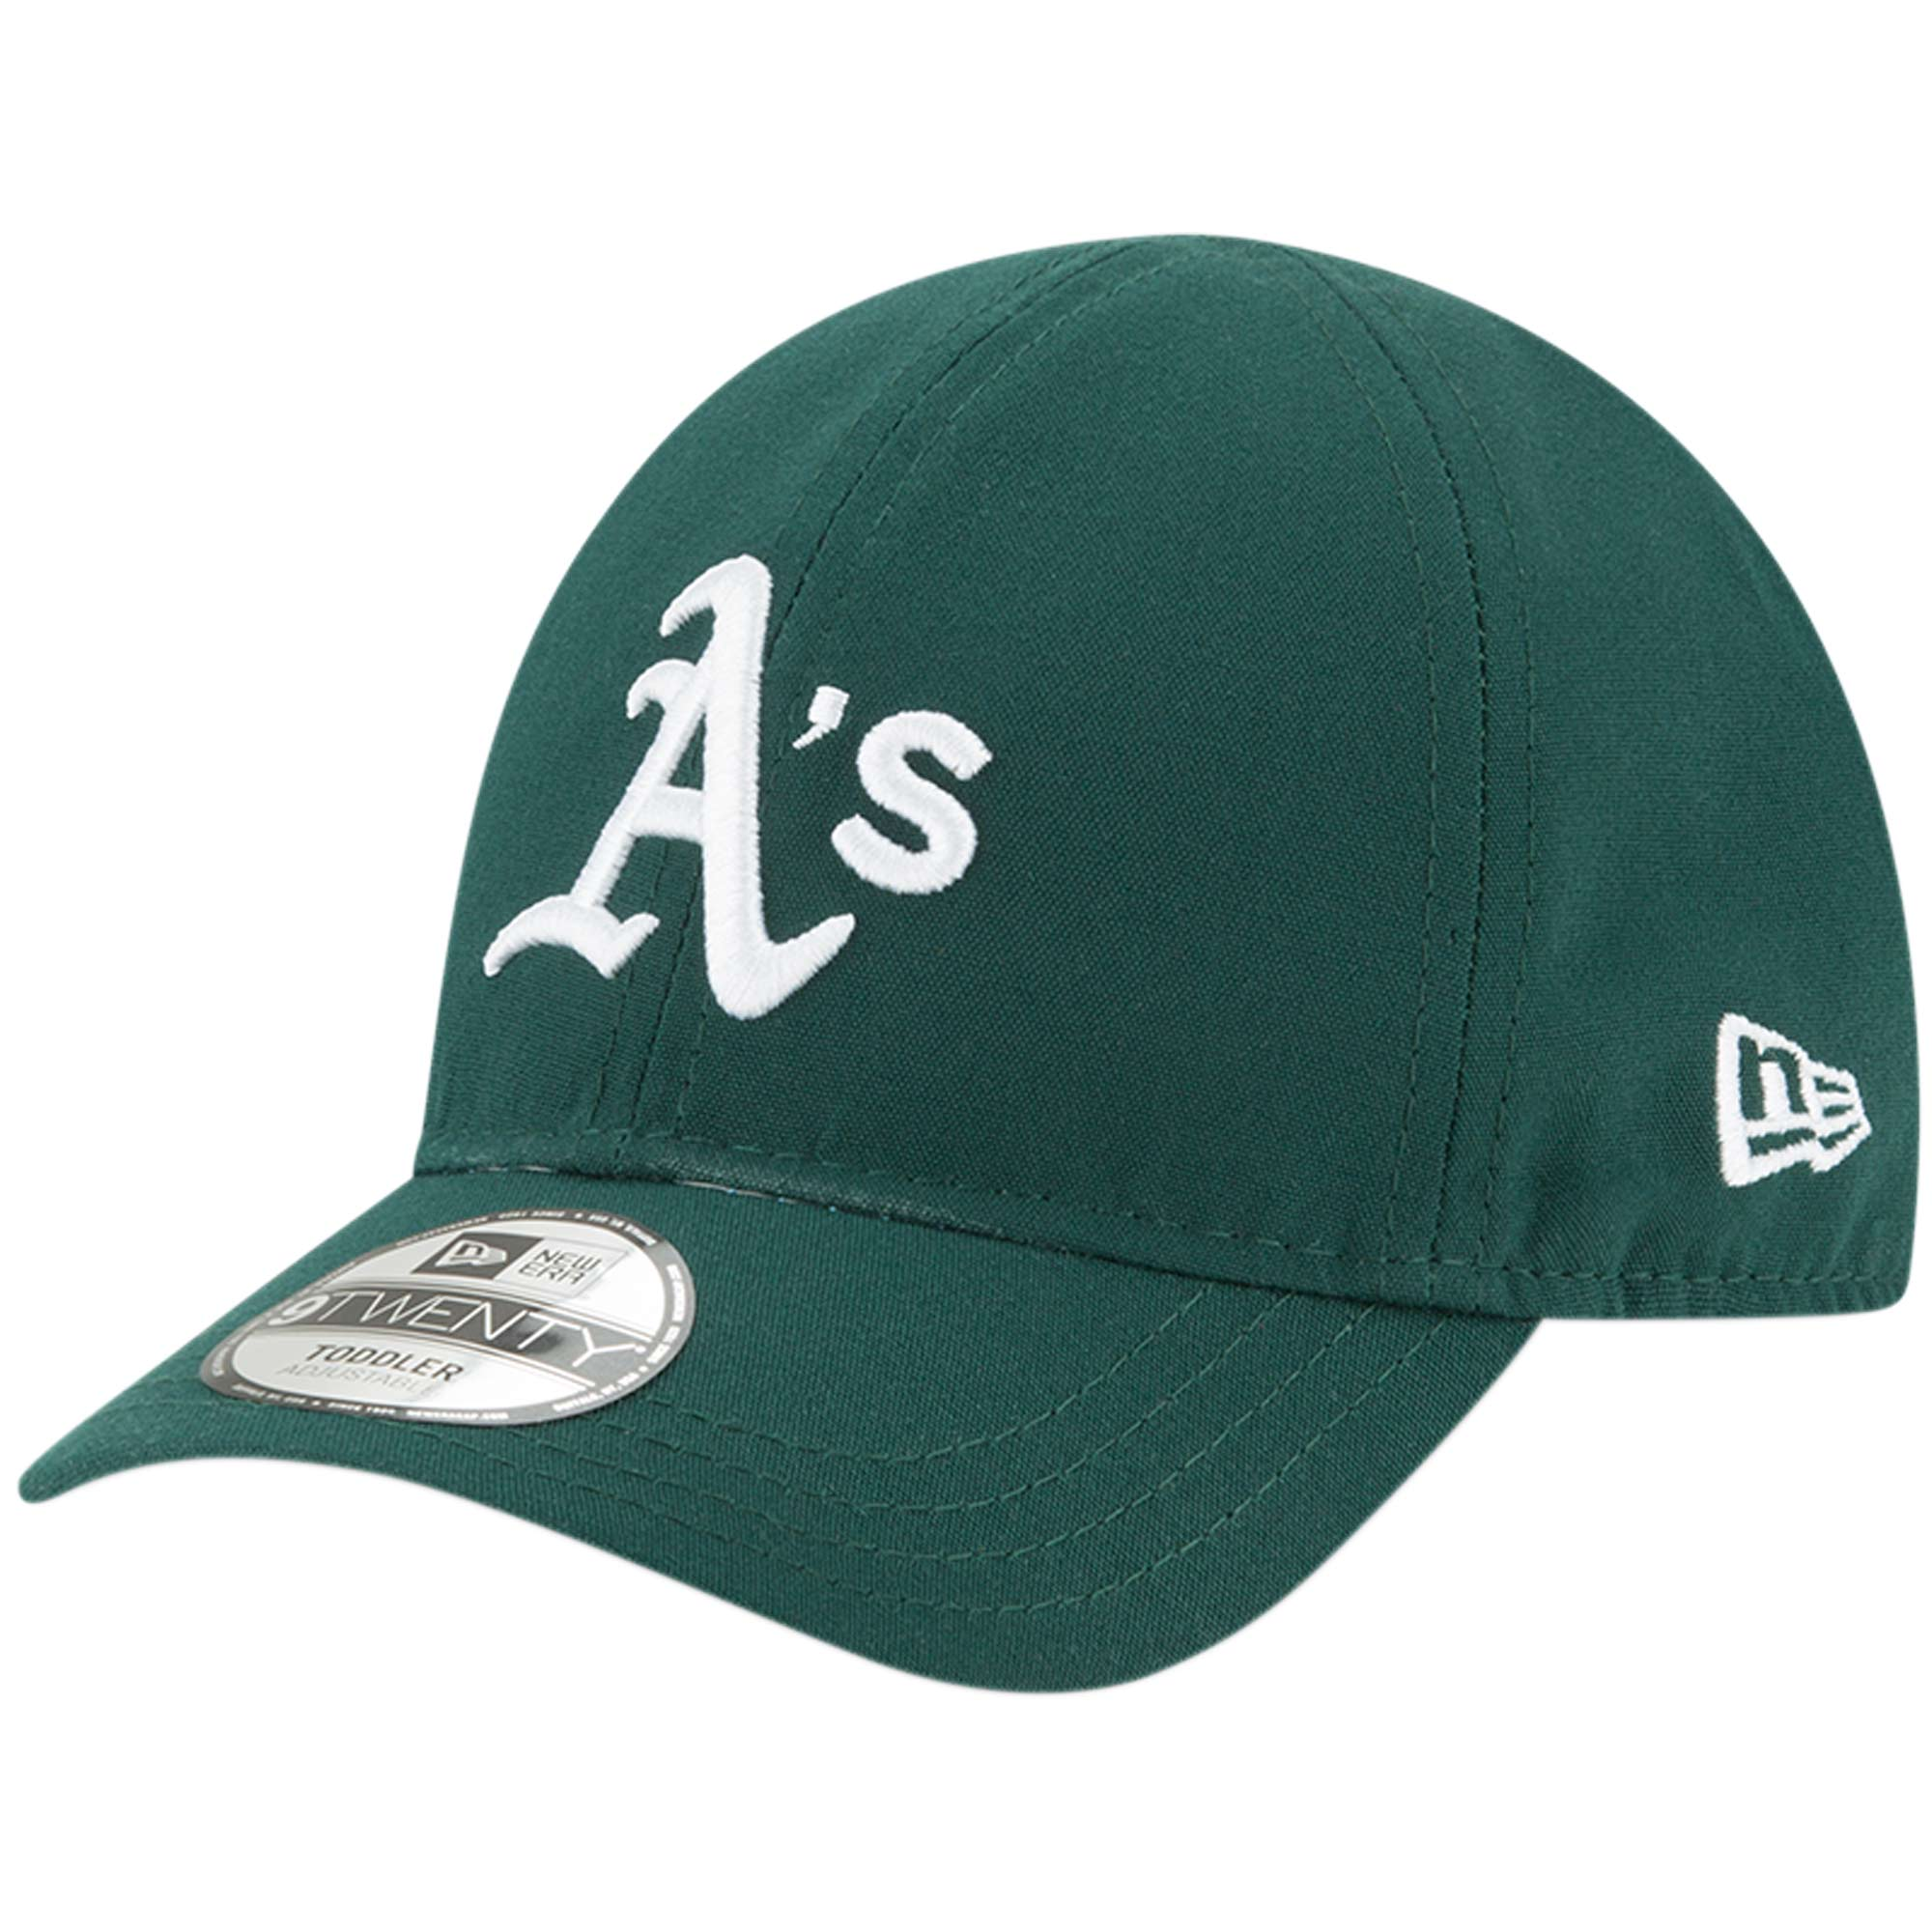 Oakland Athletics New Era Infant My 1st 9TWENTY Adjustable Hat - Green - OSFA